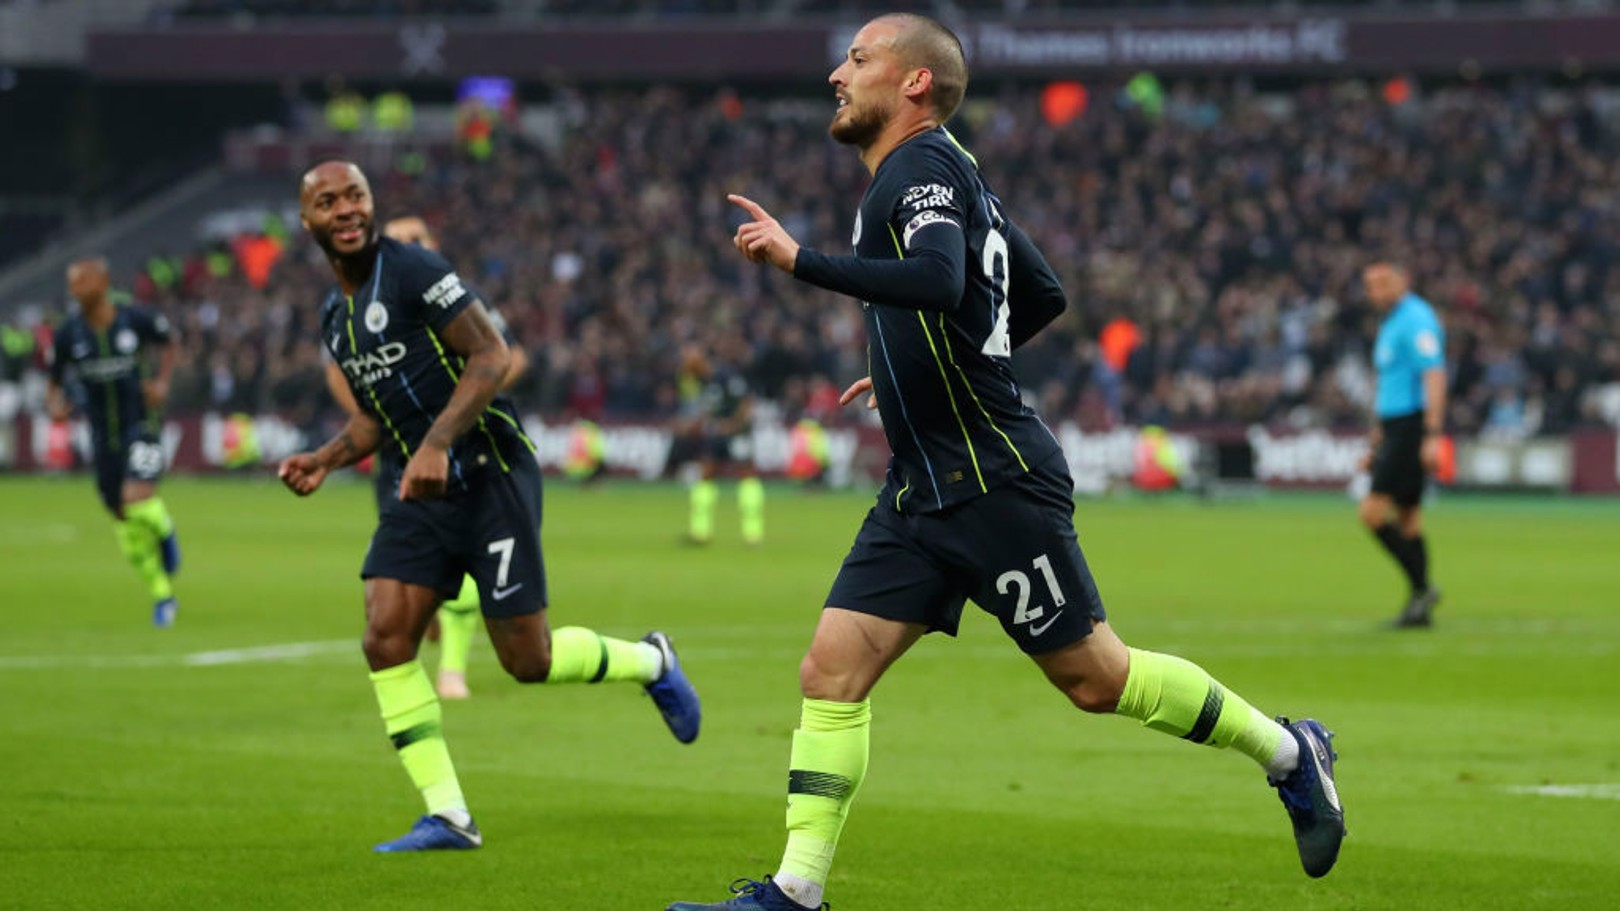 SILVA STREAK: David Silva celebrates his goal in our 4-0 win last season